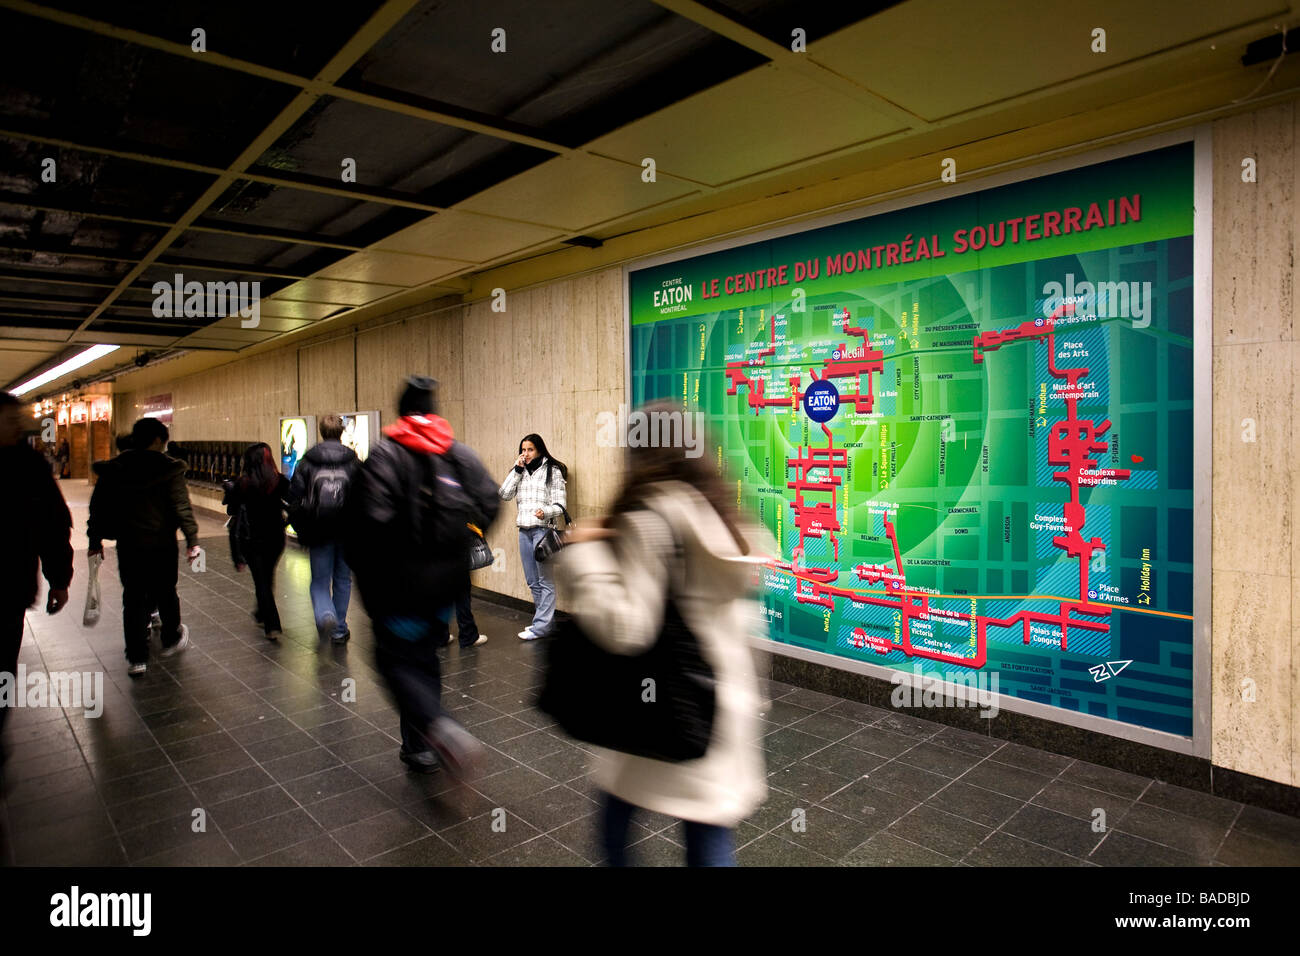 Canada, Quebec Province, Montreal, subway corridor and the underground city map - Stock Image